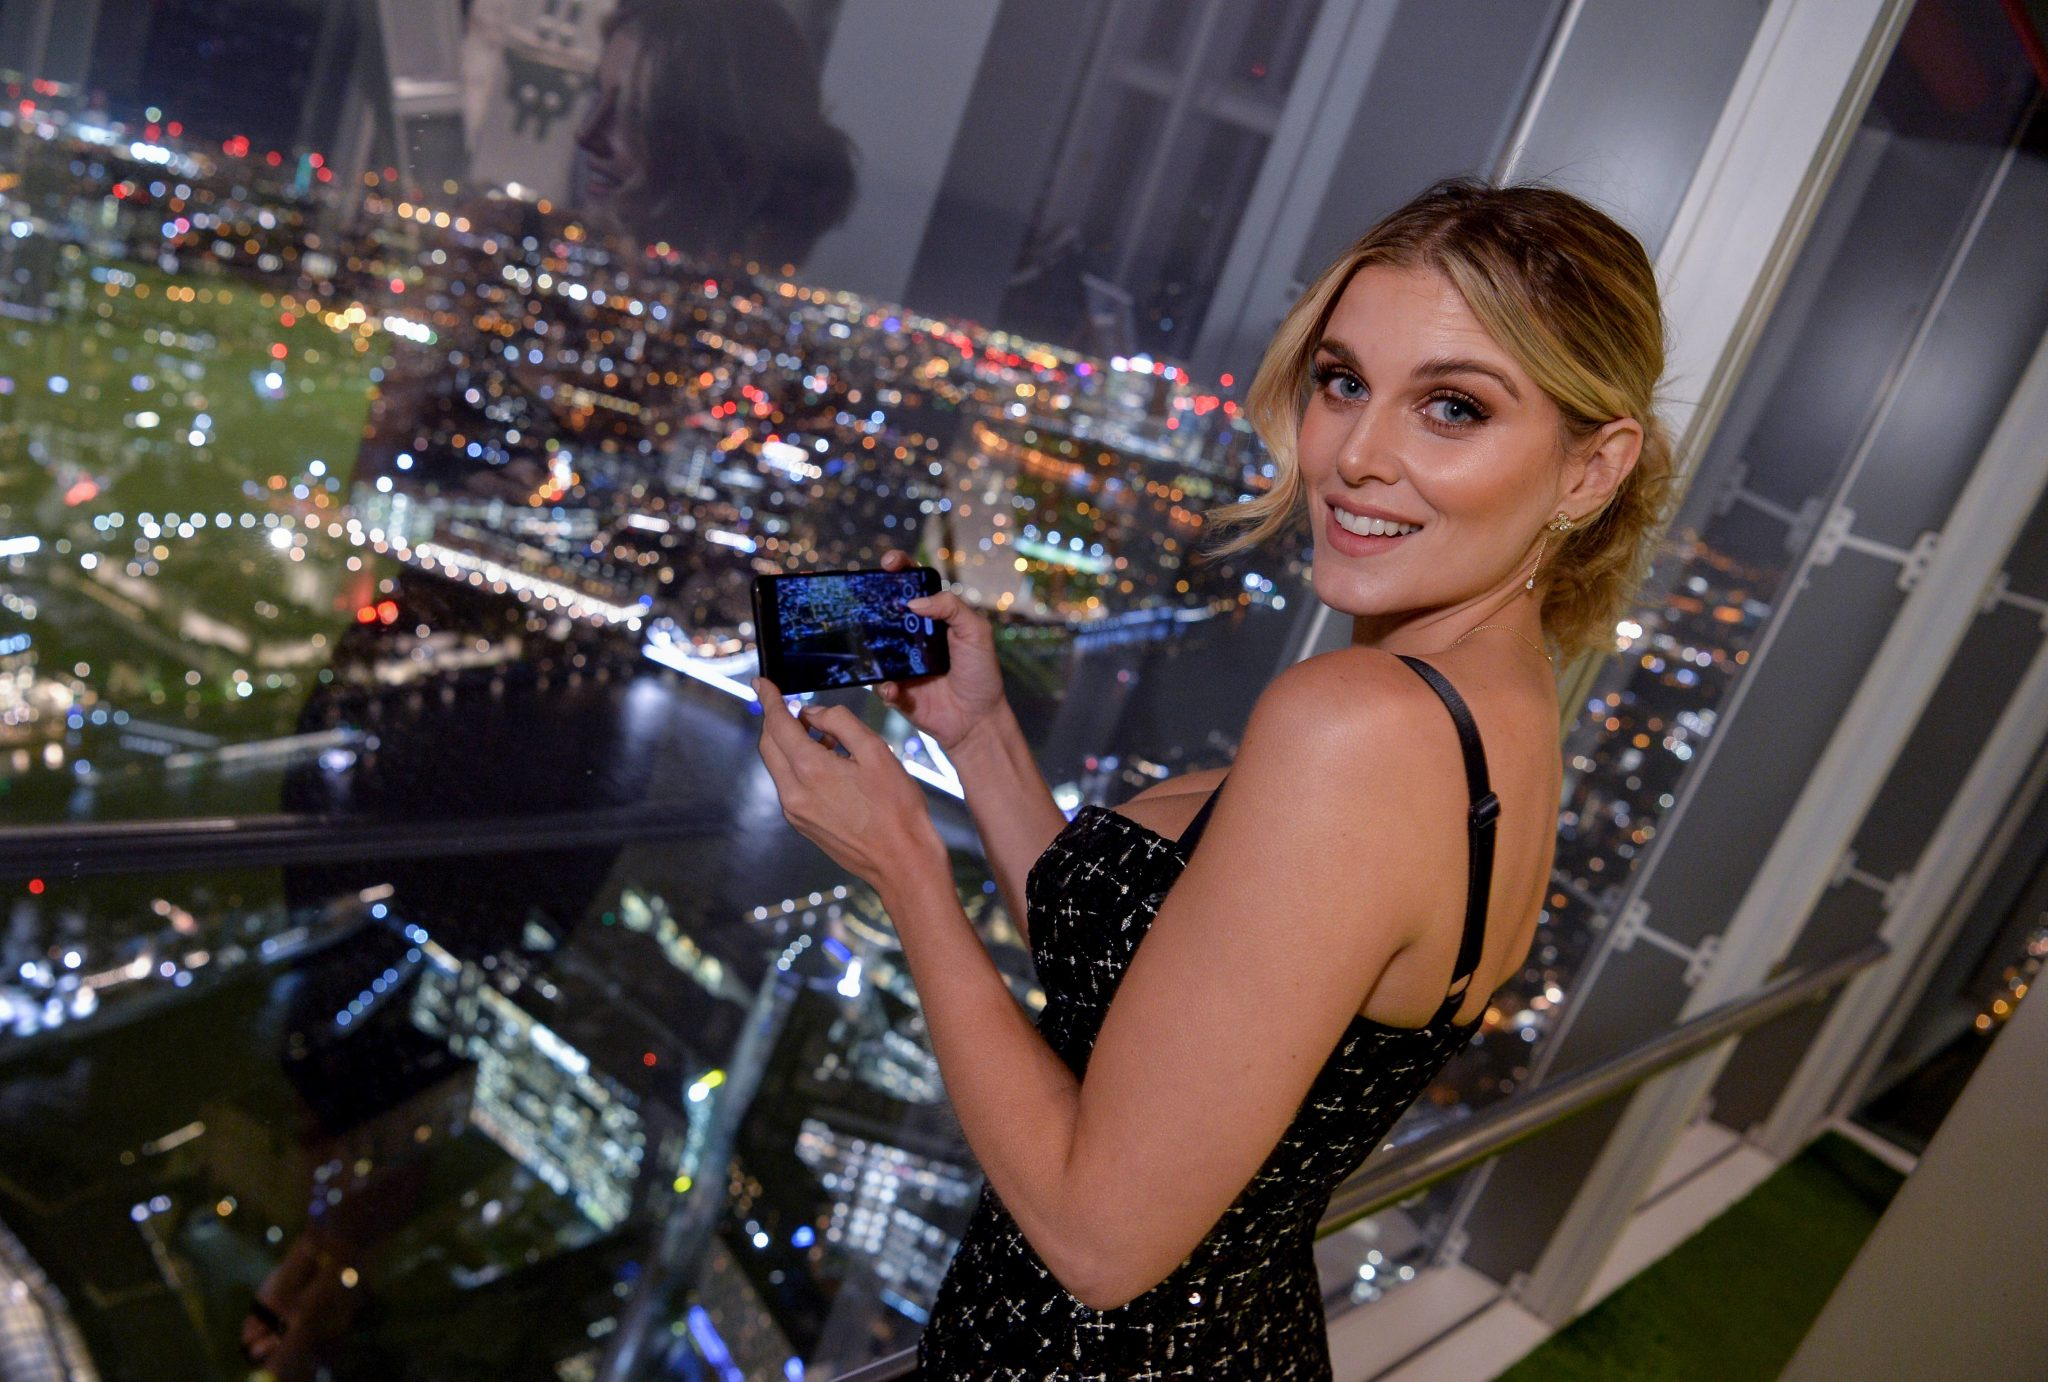 Ashley James attends an astrophotography evening hosted by Google Pixel 4 at the Shard, London. PA Photo. Picture date: Wednesday November 6, 2019. The Shard turned off its lights so guests at the event could get a clear view of the night sky. The Google Pixel 4 launched last month with the new enhanced Night Sight mode, which can capture photos of the Milky Way in just one tap. Photo credit should read: Jeff Spicer/PA Wire